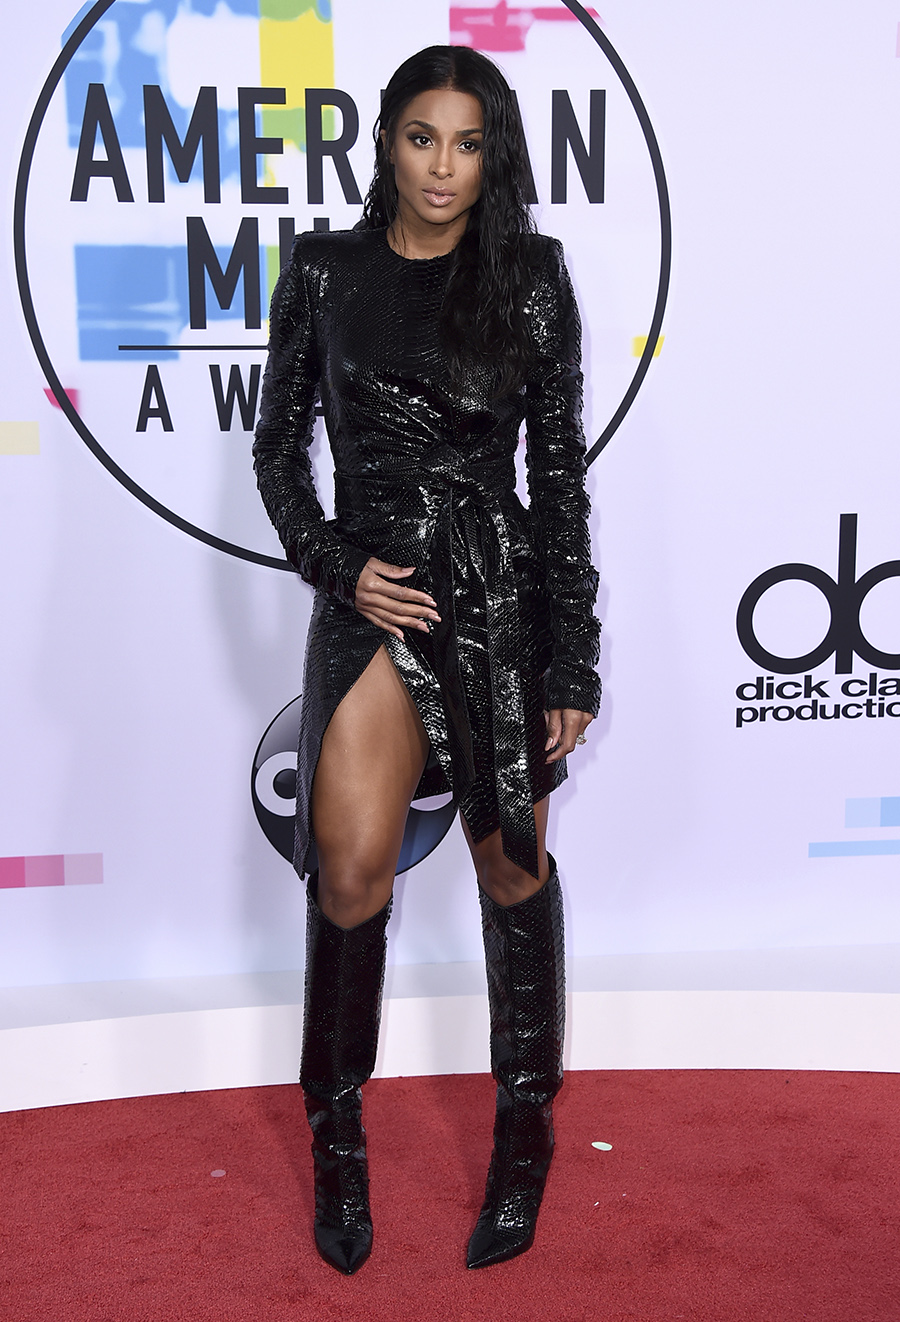 Ciara American Music Awards. Ciara